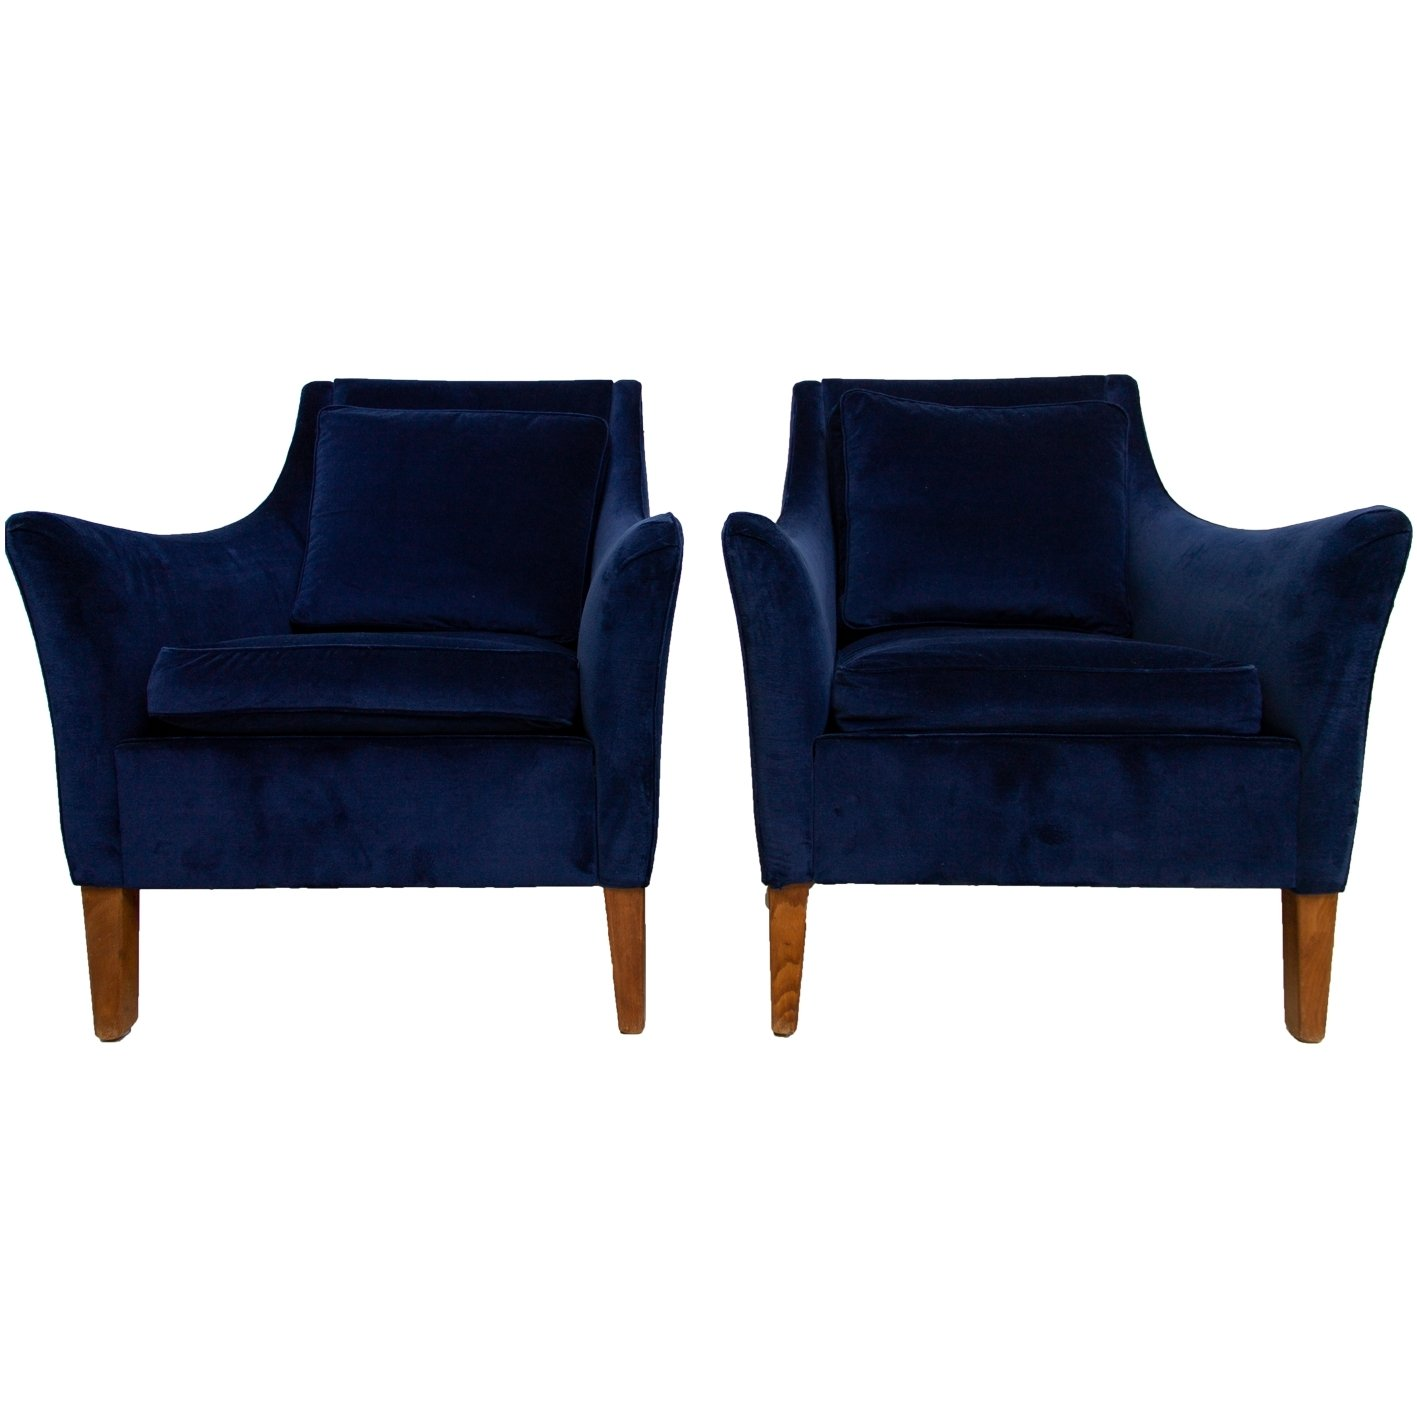 Pair Of U0027Giorgettiu0027 Club Chairs With Royal Blue Velvet